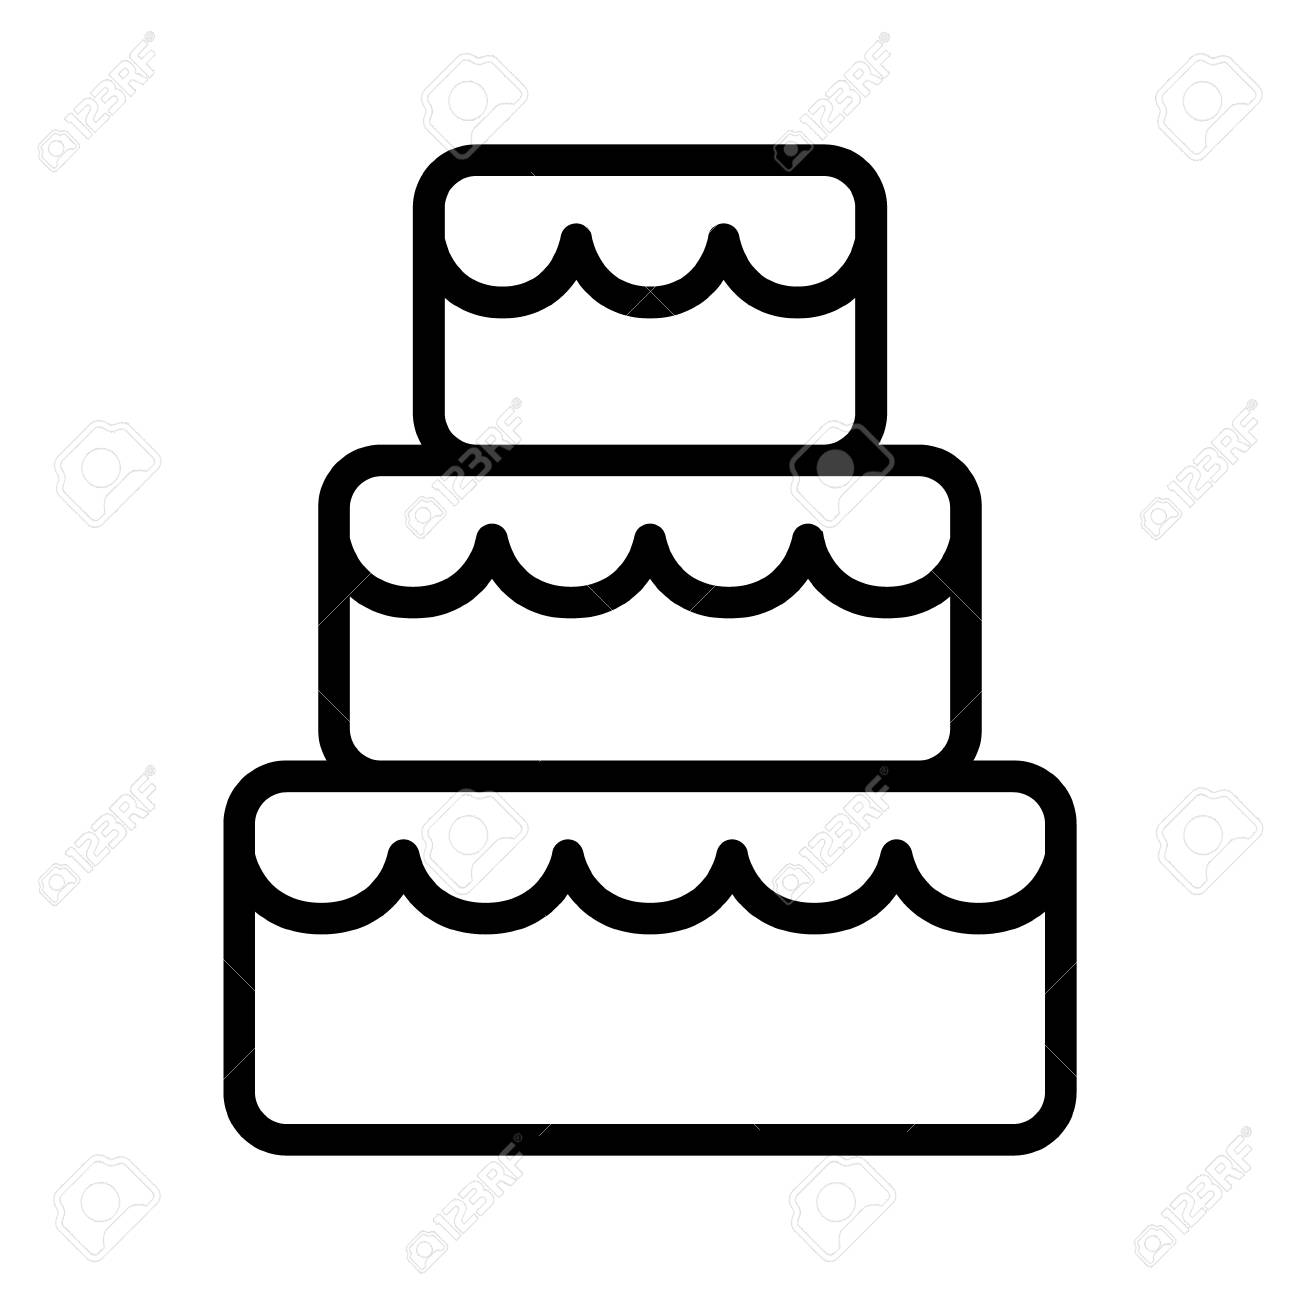 Stacked Wedding Cake Dessert With Frosting Line Art Vector Icon